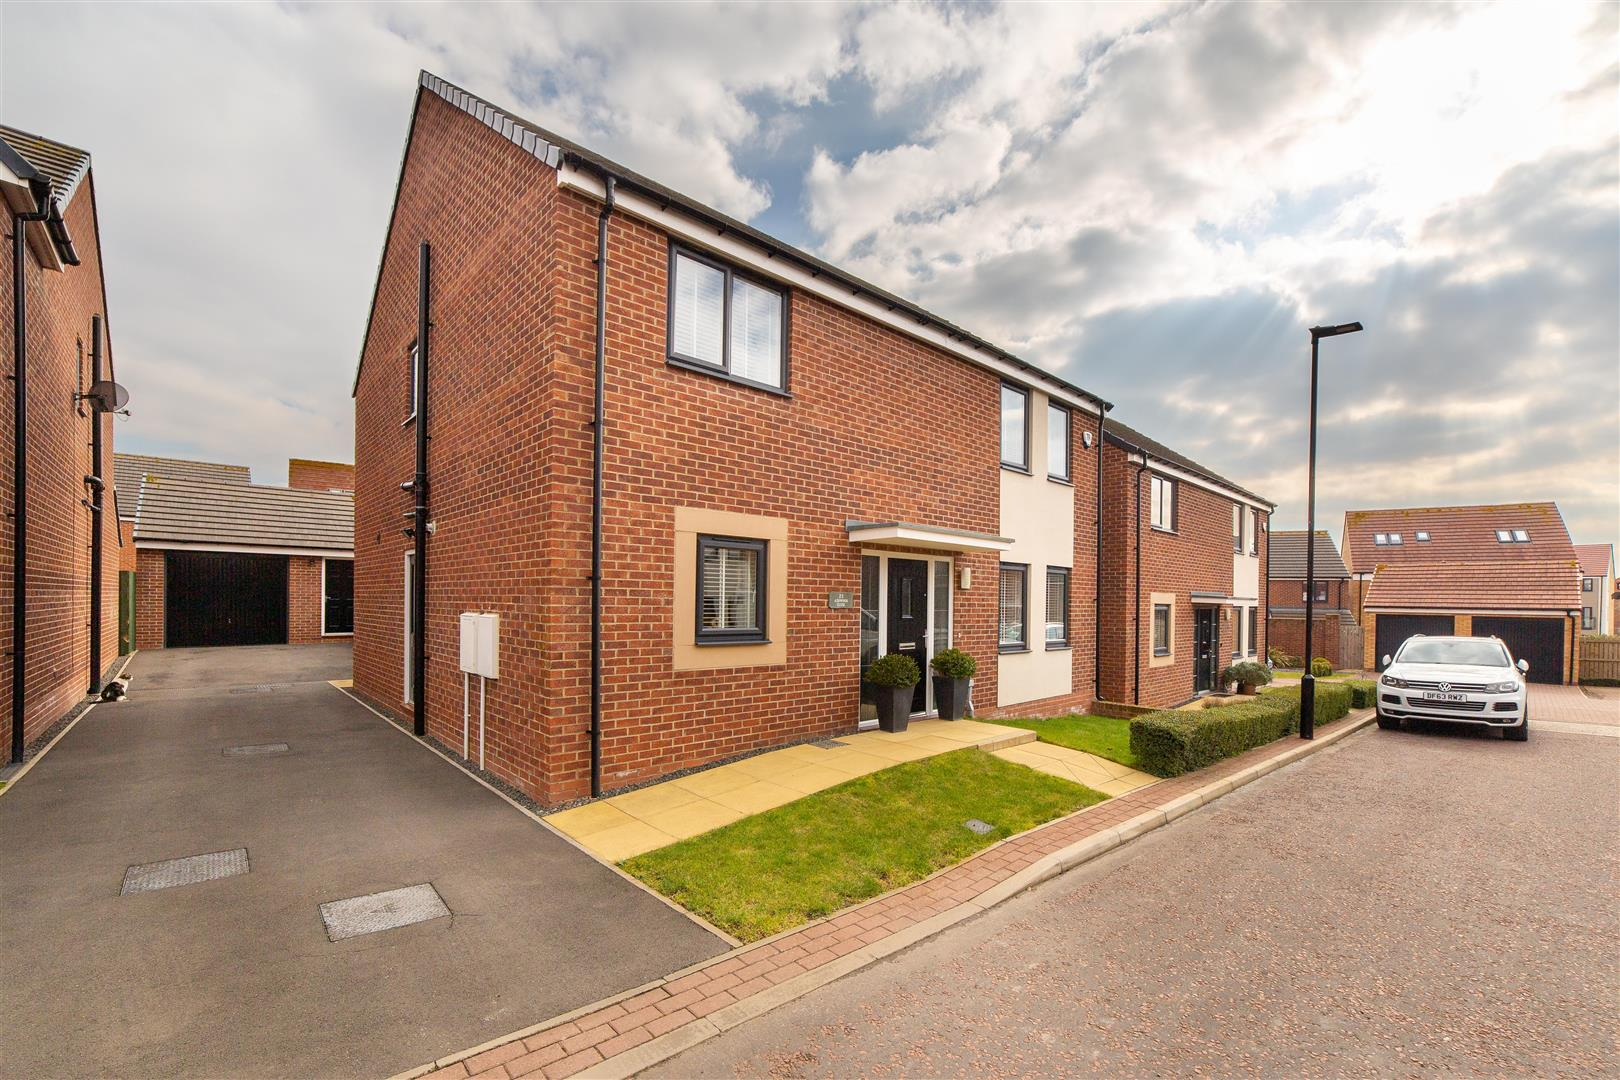 3 bed detached house for sale in Great Park, NE13 9DH, NE13